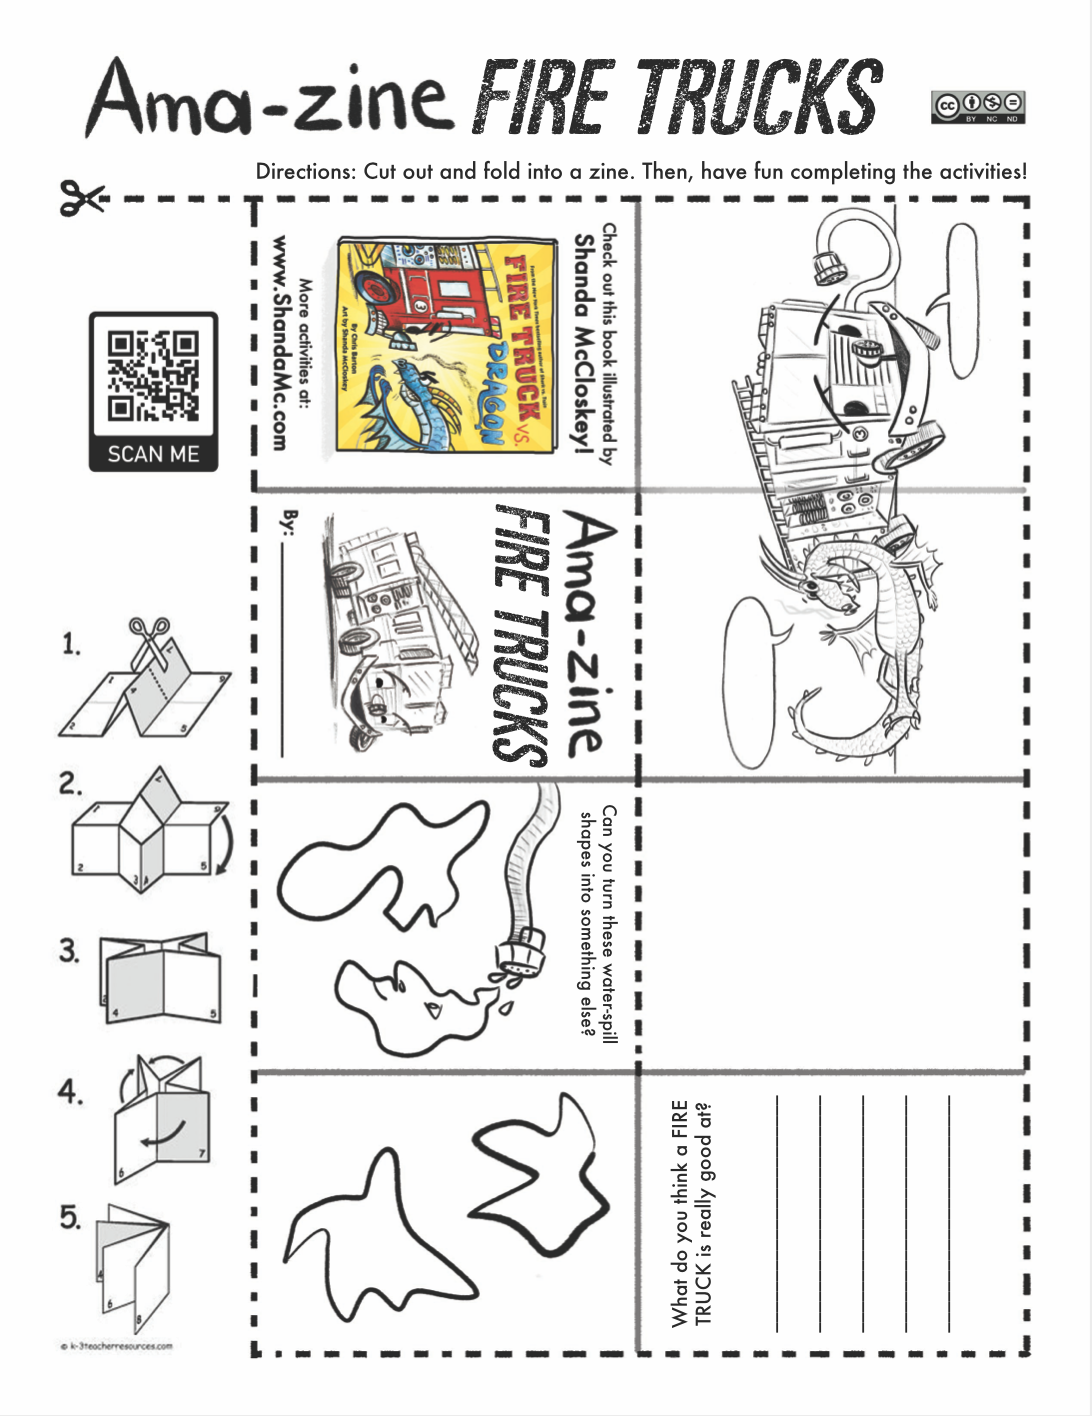 Amazing fire trucks zine activity inspired by the book, Fire Truck vs. Dragon, by Chris Barton and Shanda McCloskey